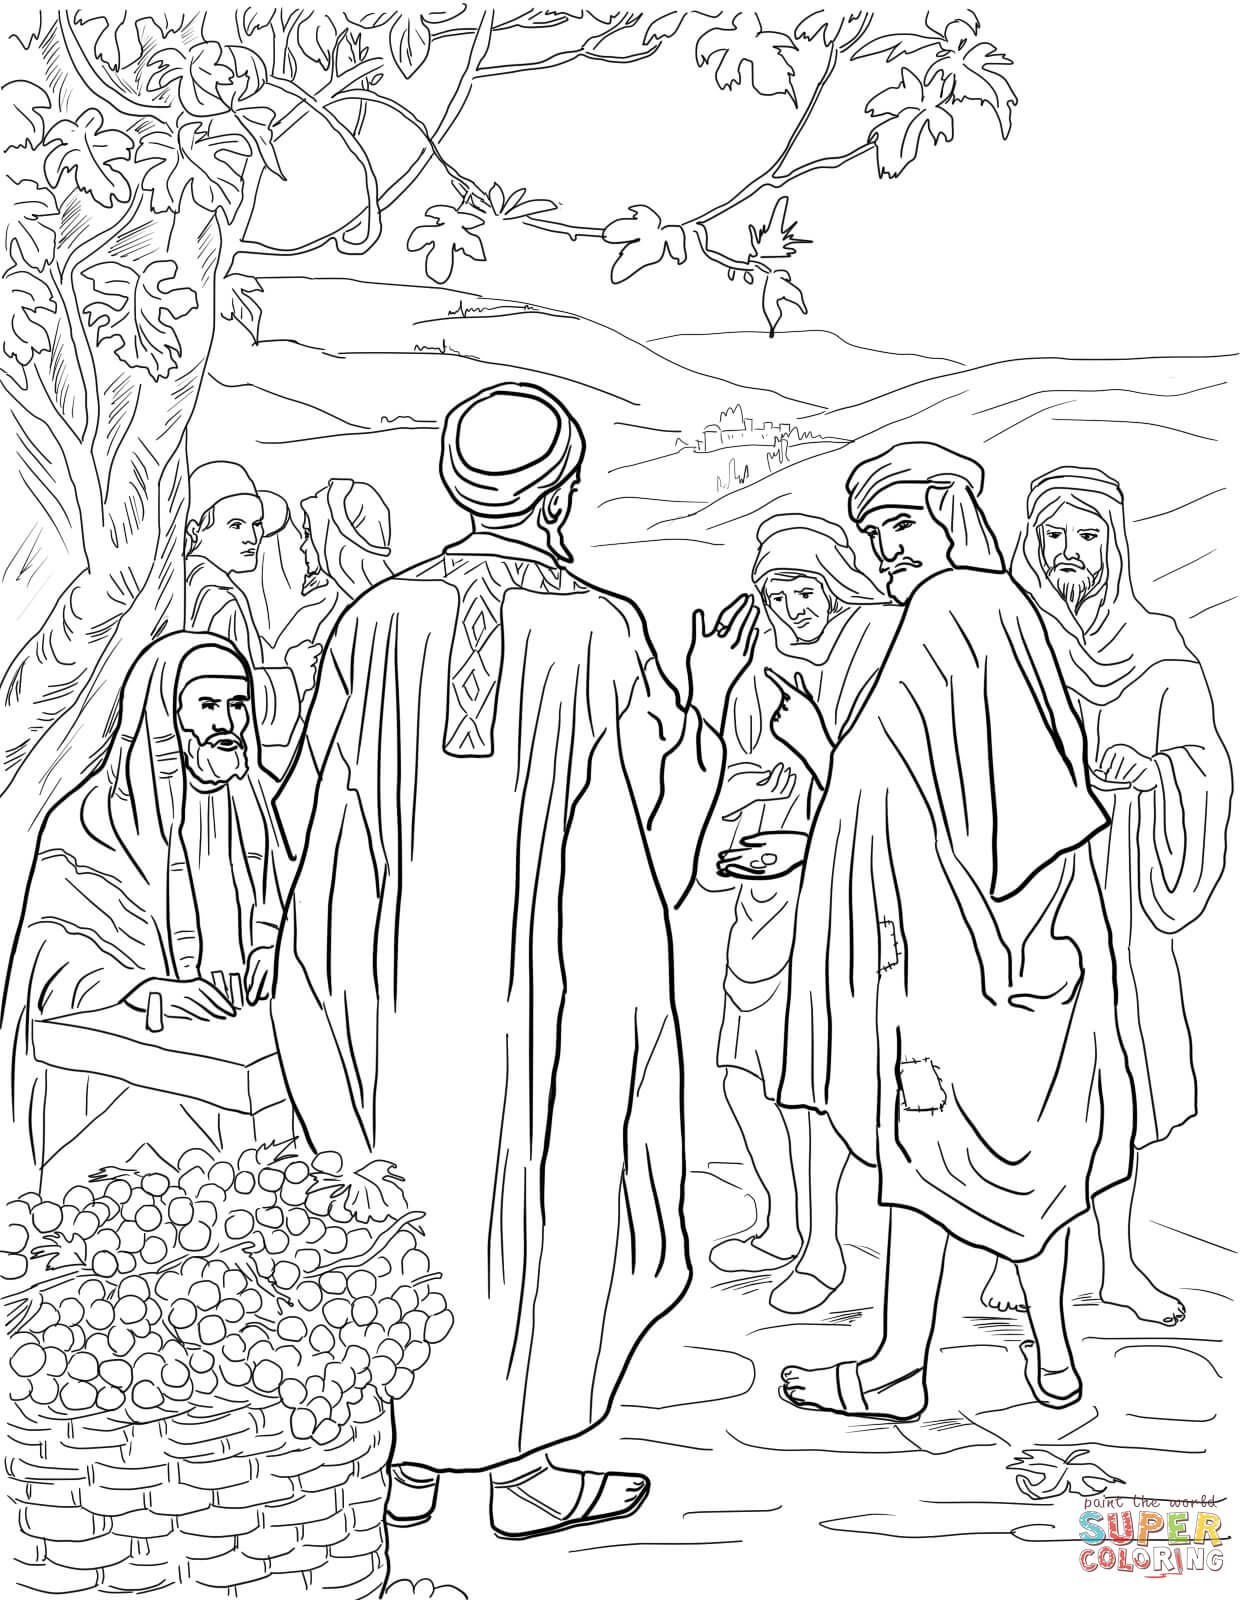 Parable Of The Workers In The Vineyard Coloring Page From